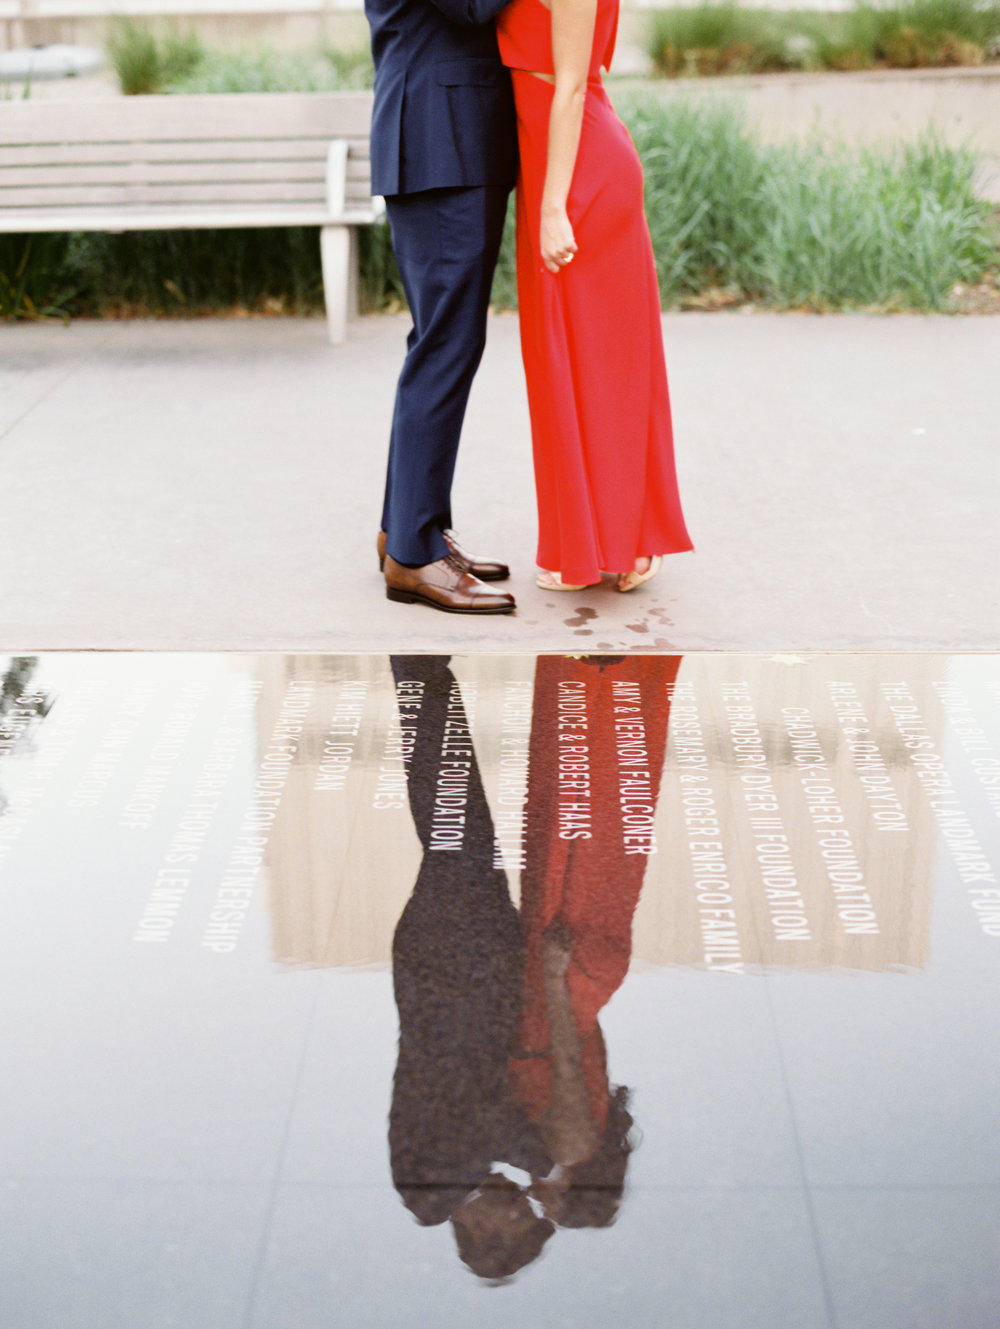 dallas-texas-dallas-arboretum-botanical-garden-engagements-ar-photography-teresa-rowan-175.jpg